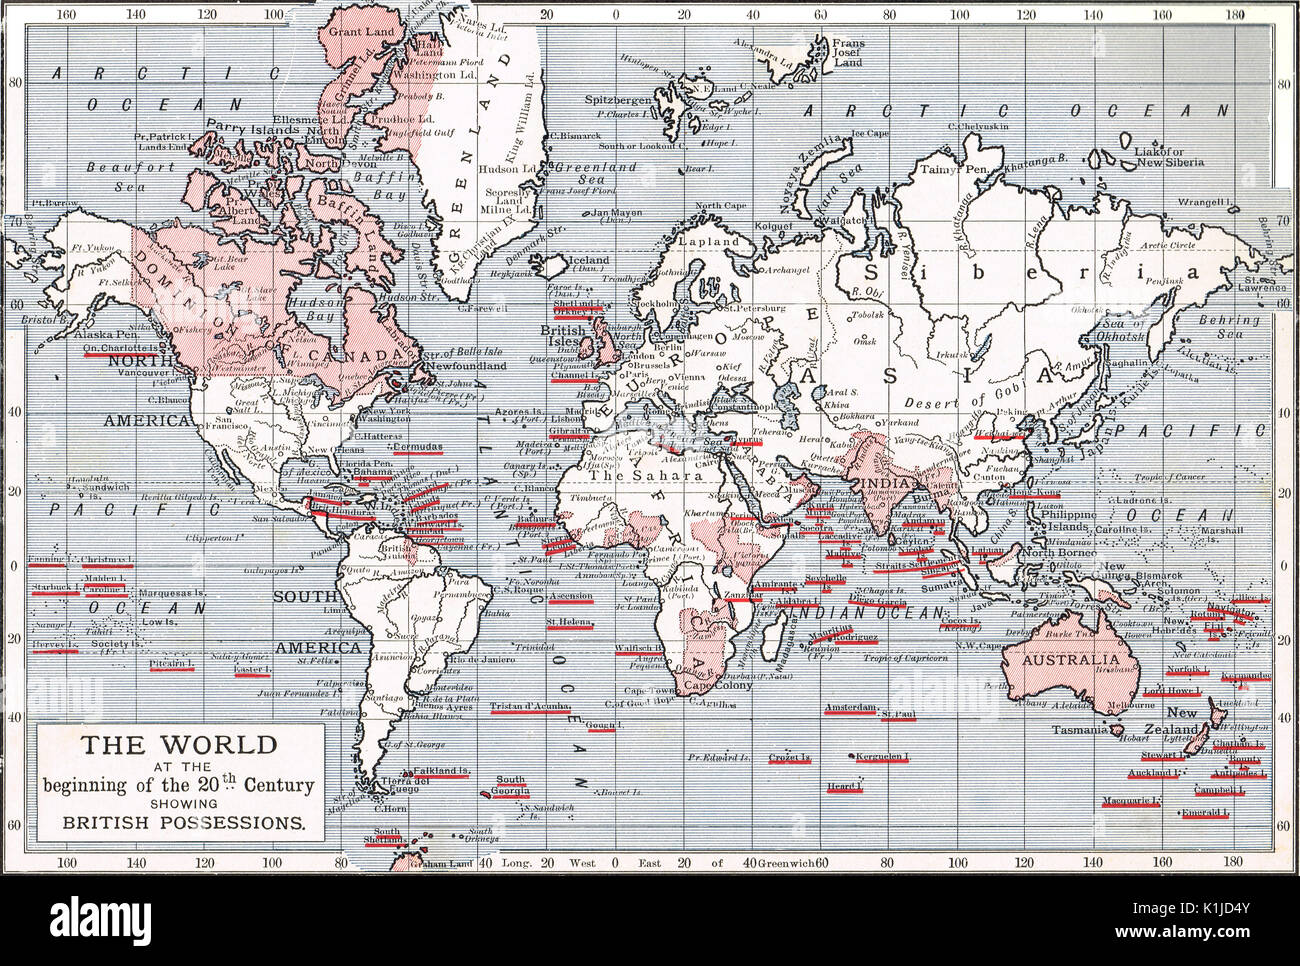 World map showing British possessions at the beginning of the 20th century - Stock Image